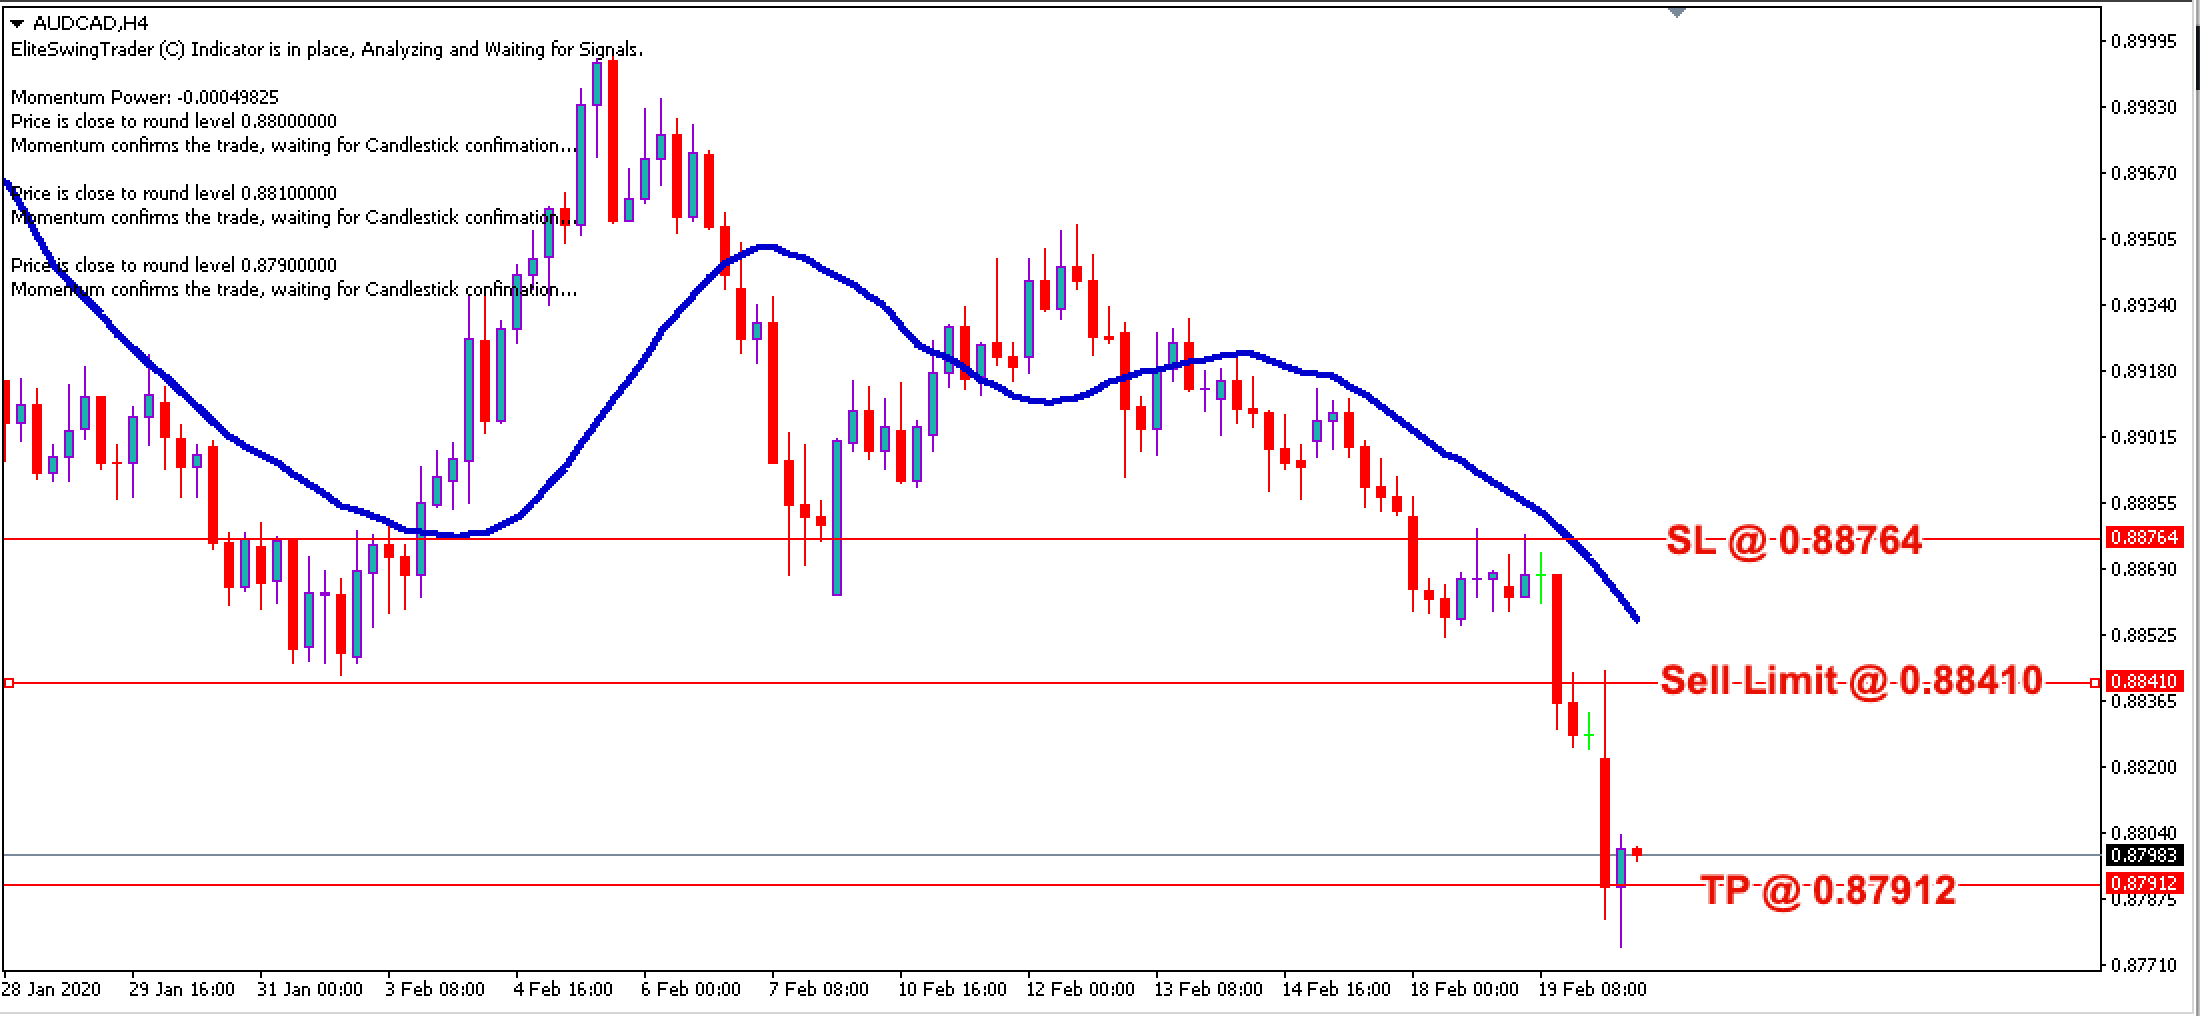 AUD/CAD Daily Price Forecast – 20th Feb 2020